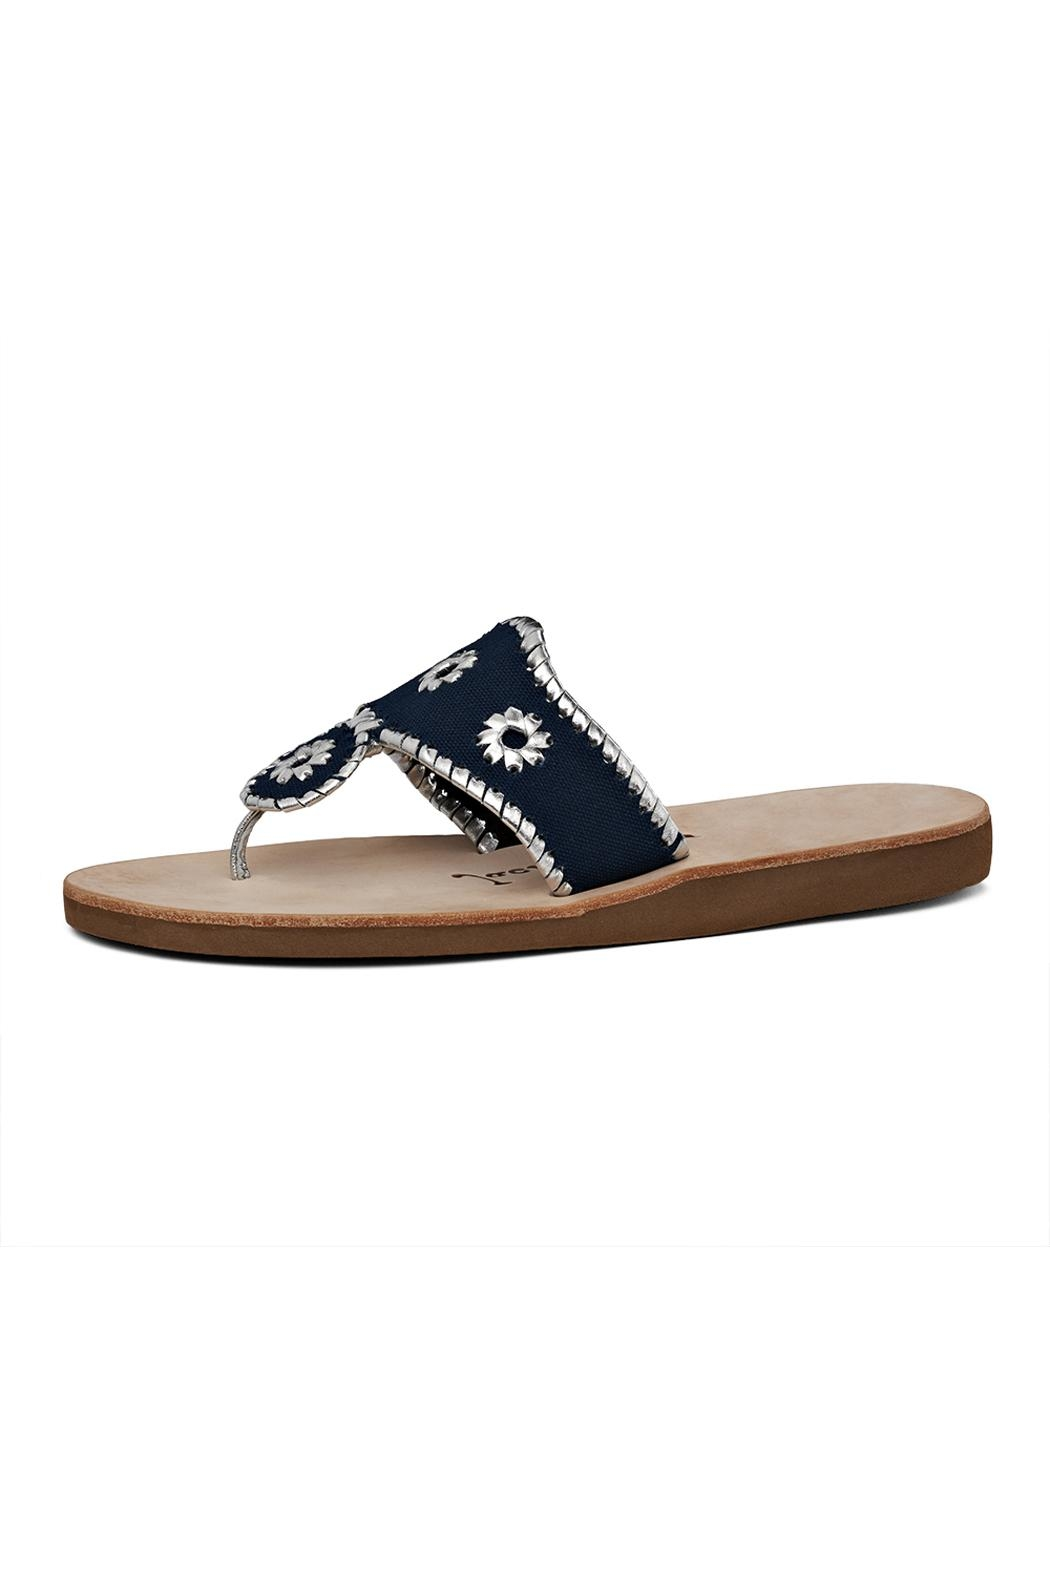 Jack Rogers Summer Boating Sandals - Main Image